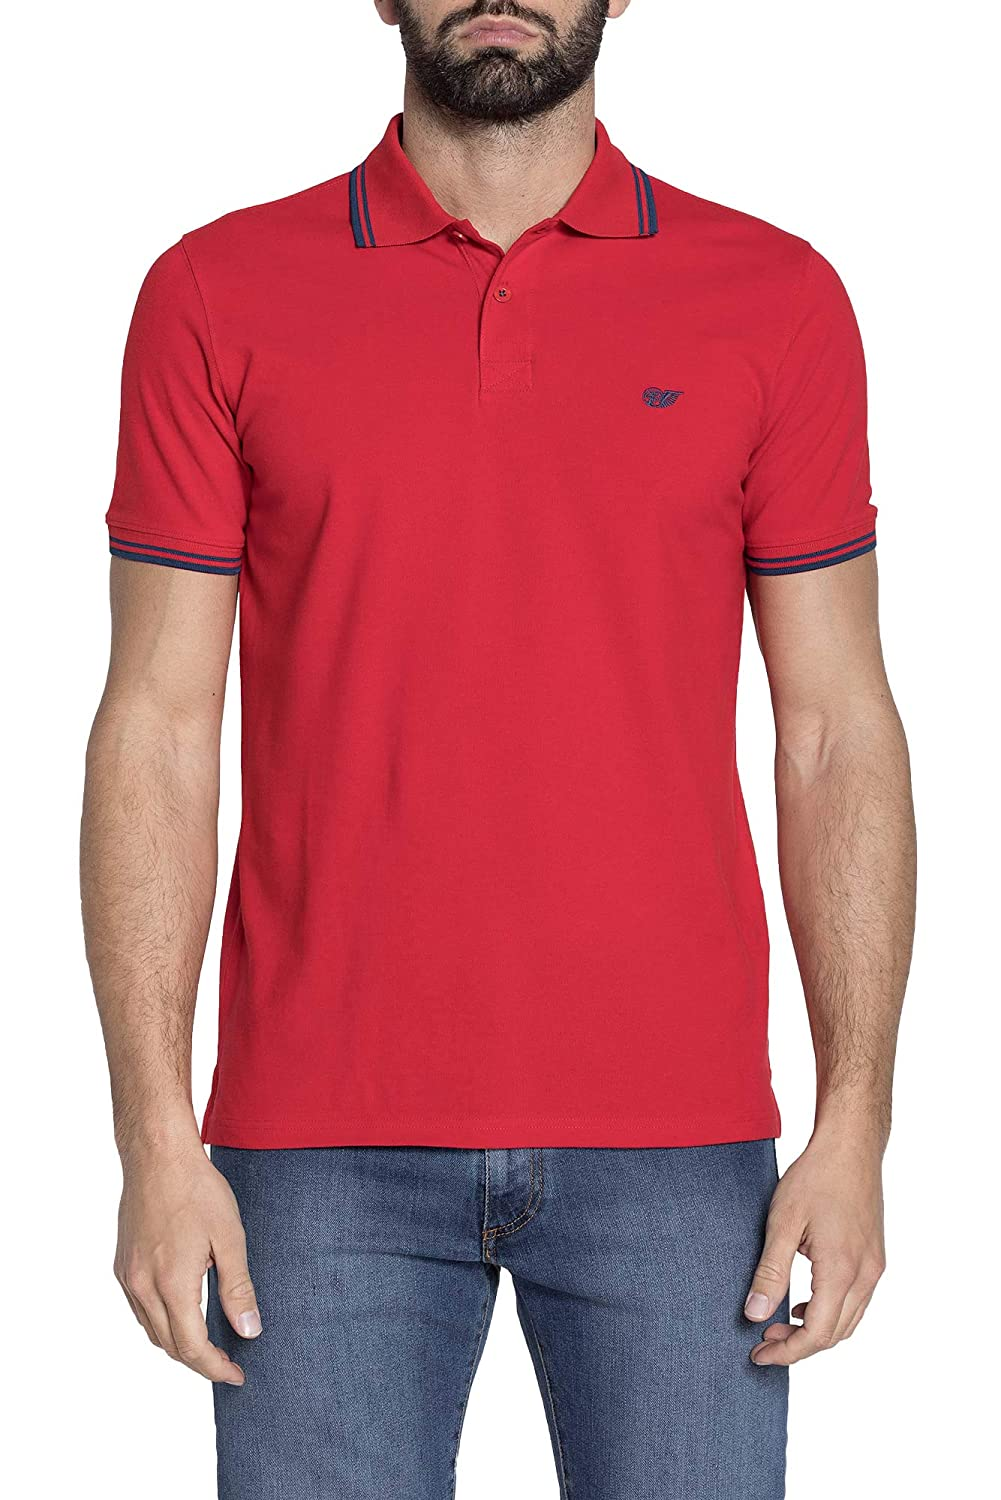 Carrera Jeans - Camiseta Tipo Polo para Hombre, Color Liso ES 3XL ...